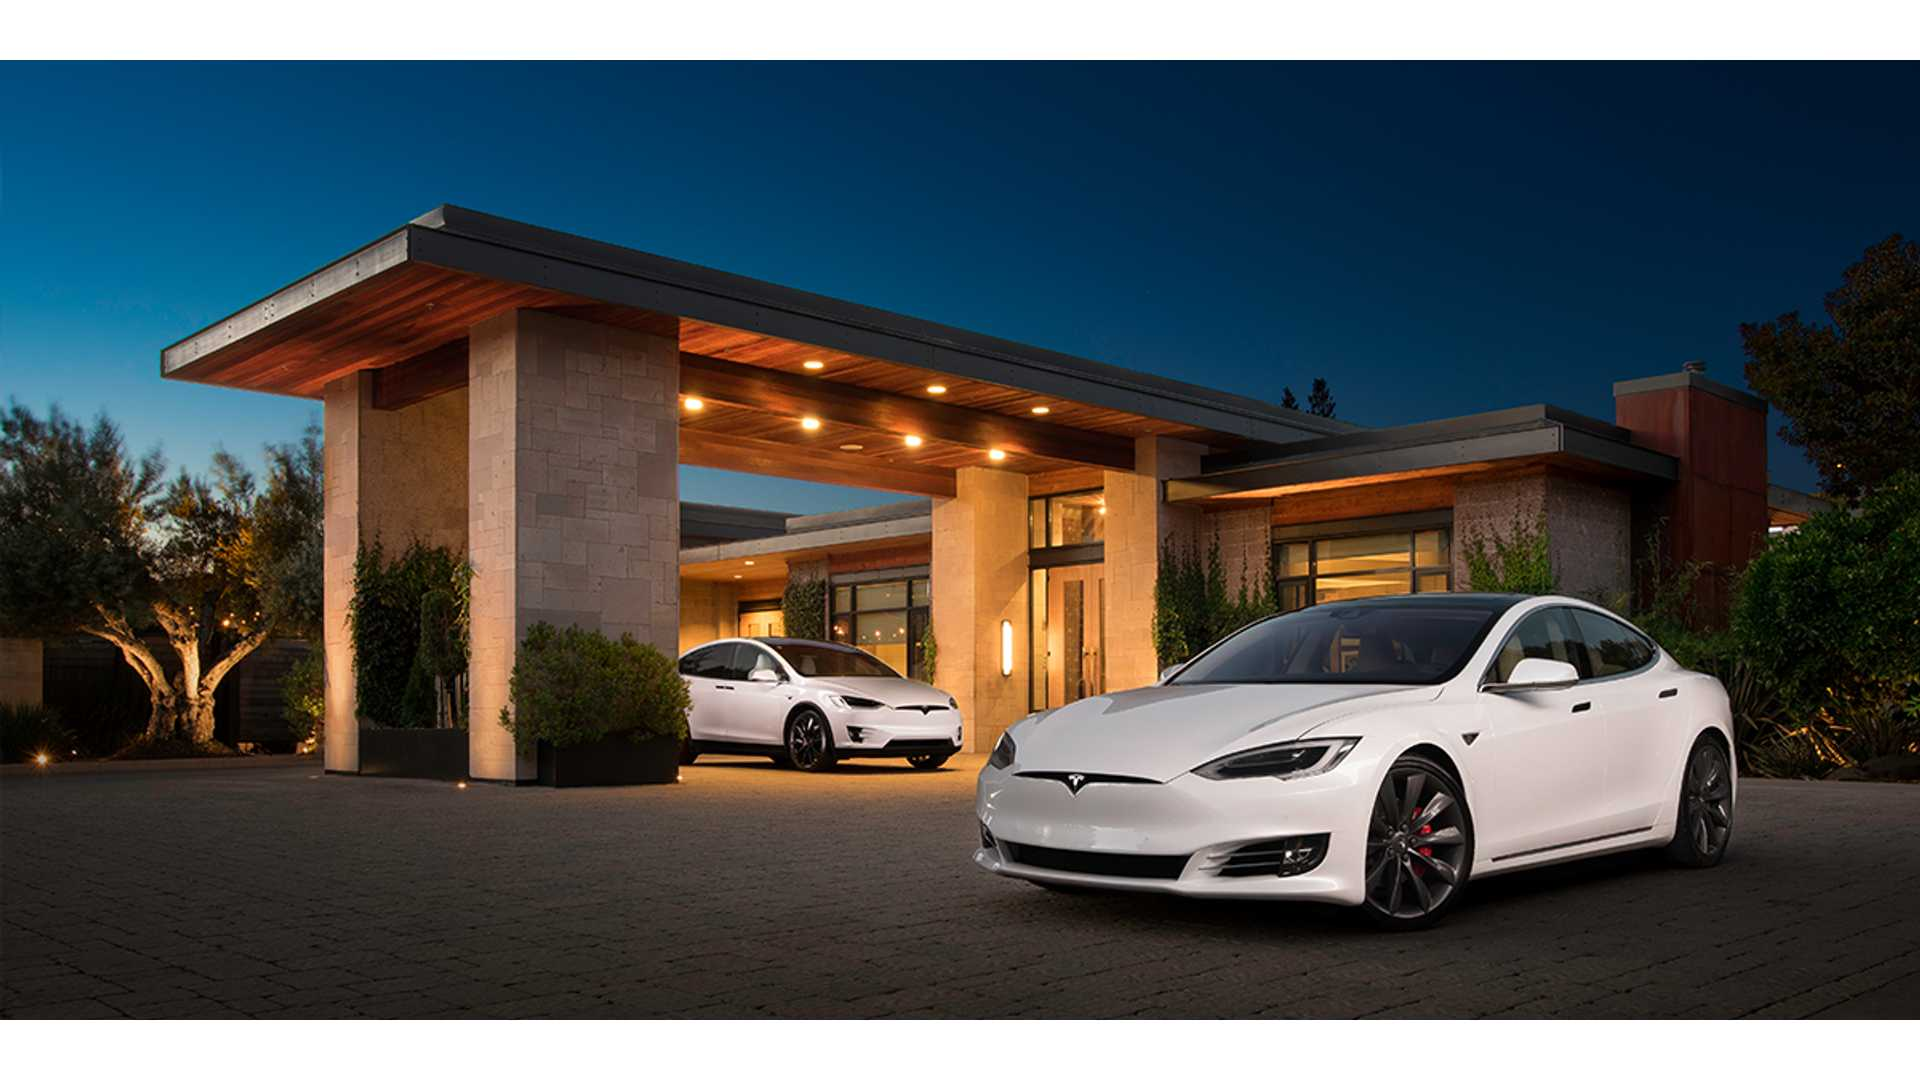 2 Year Car Lease >> Tesla Announces New 2 Year Lease Deal For Model S 60 From 593 Month